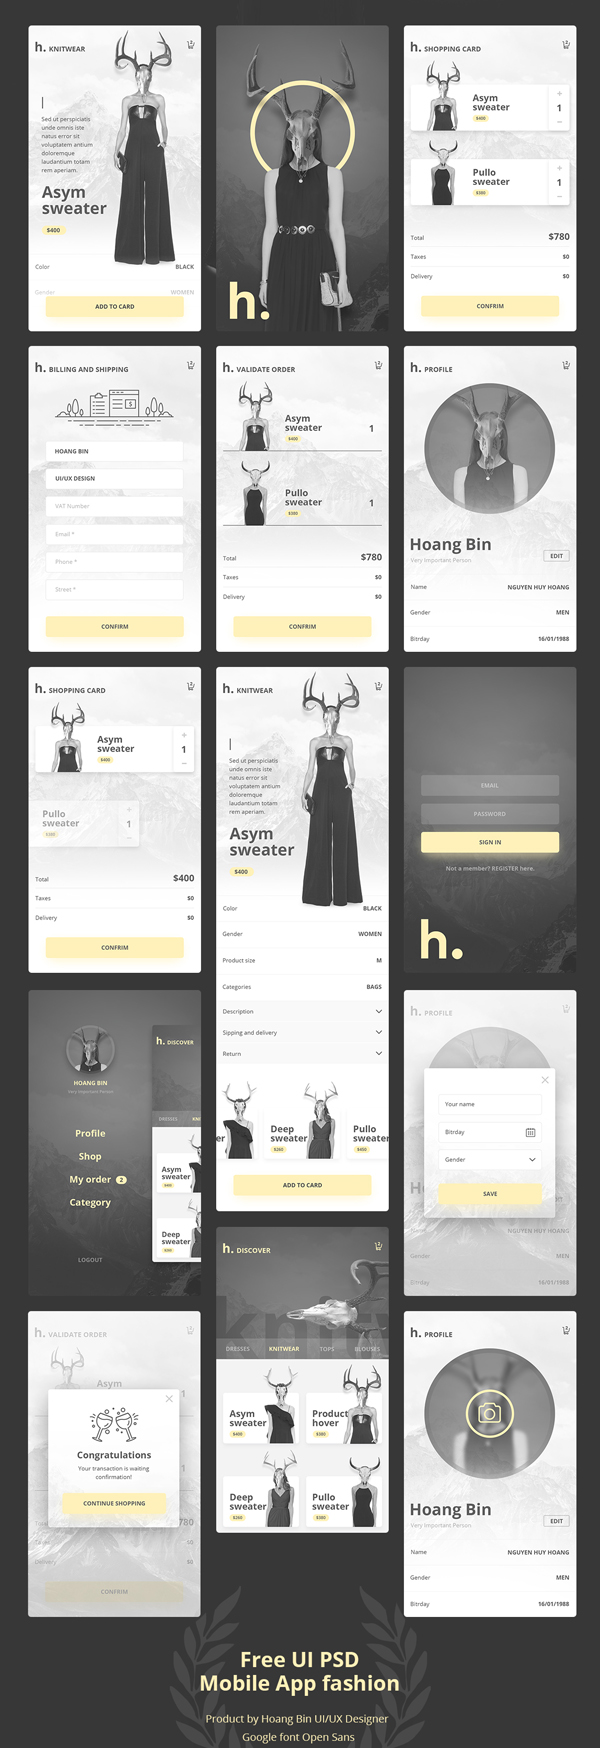 Free UI PSD Mobile App Fashion & Ecommerce ver 2.0